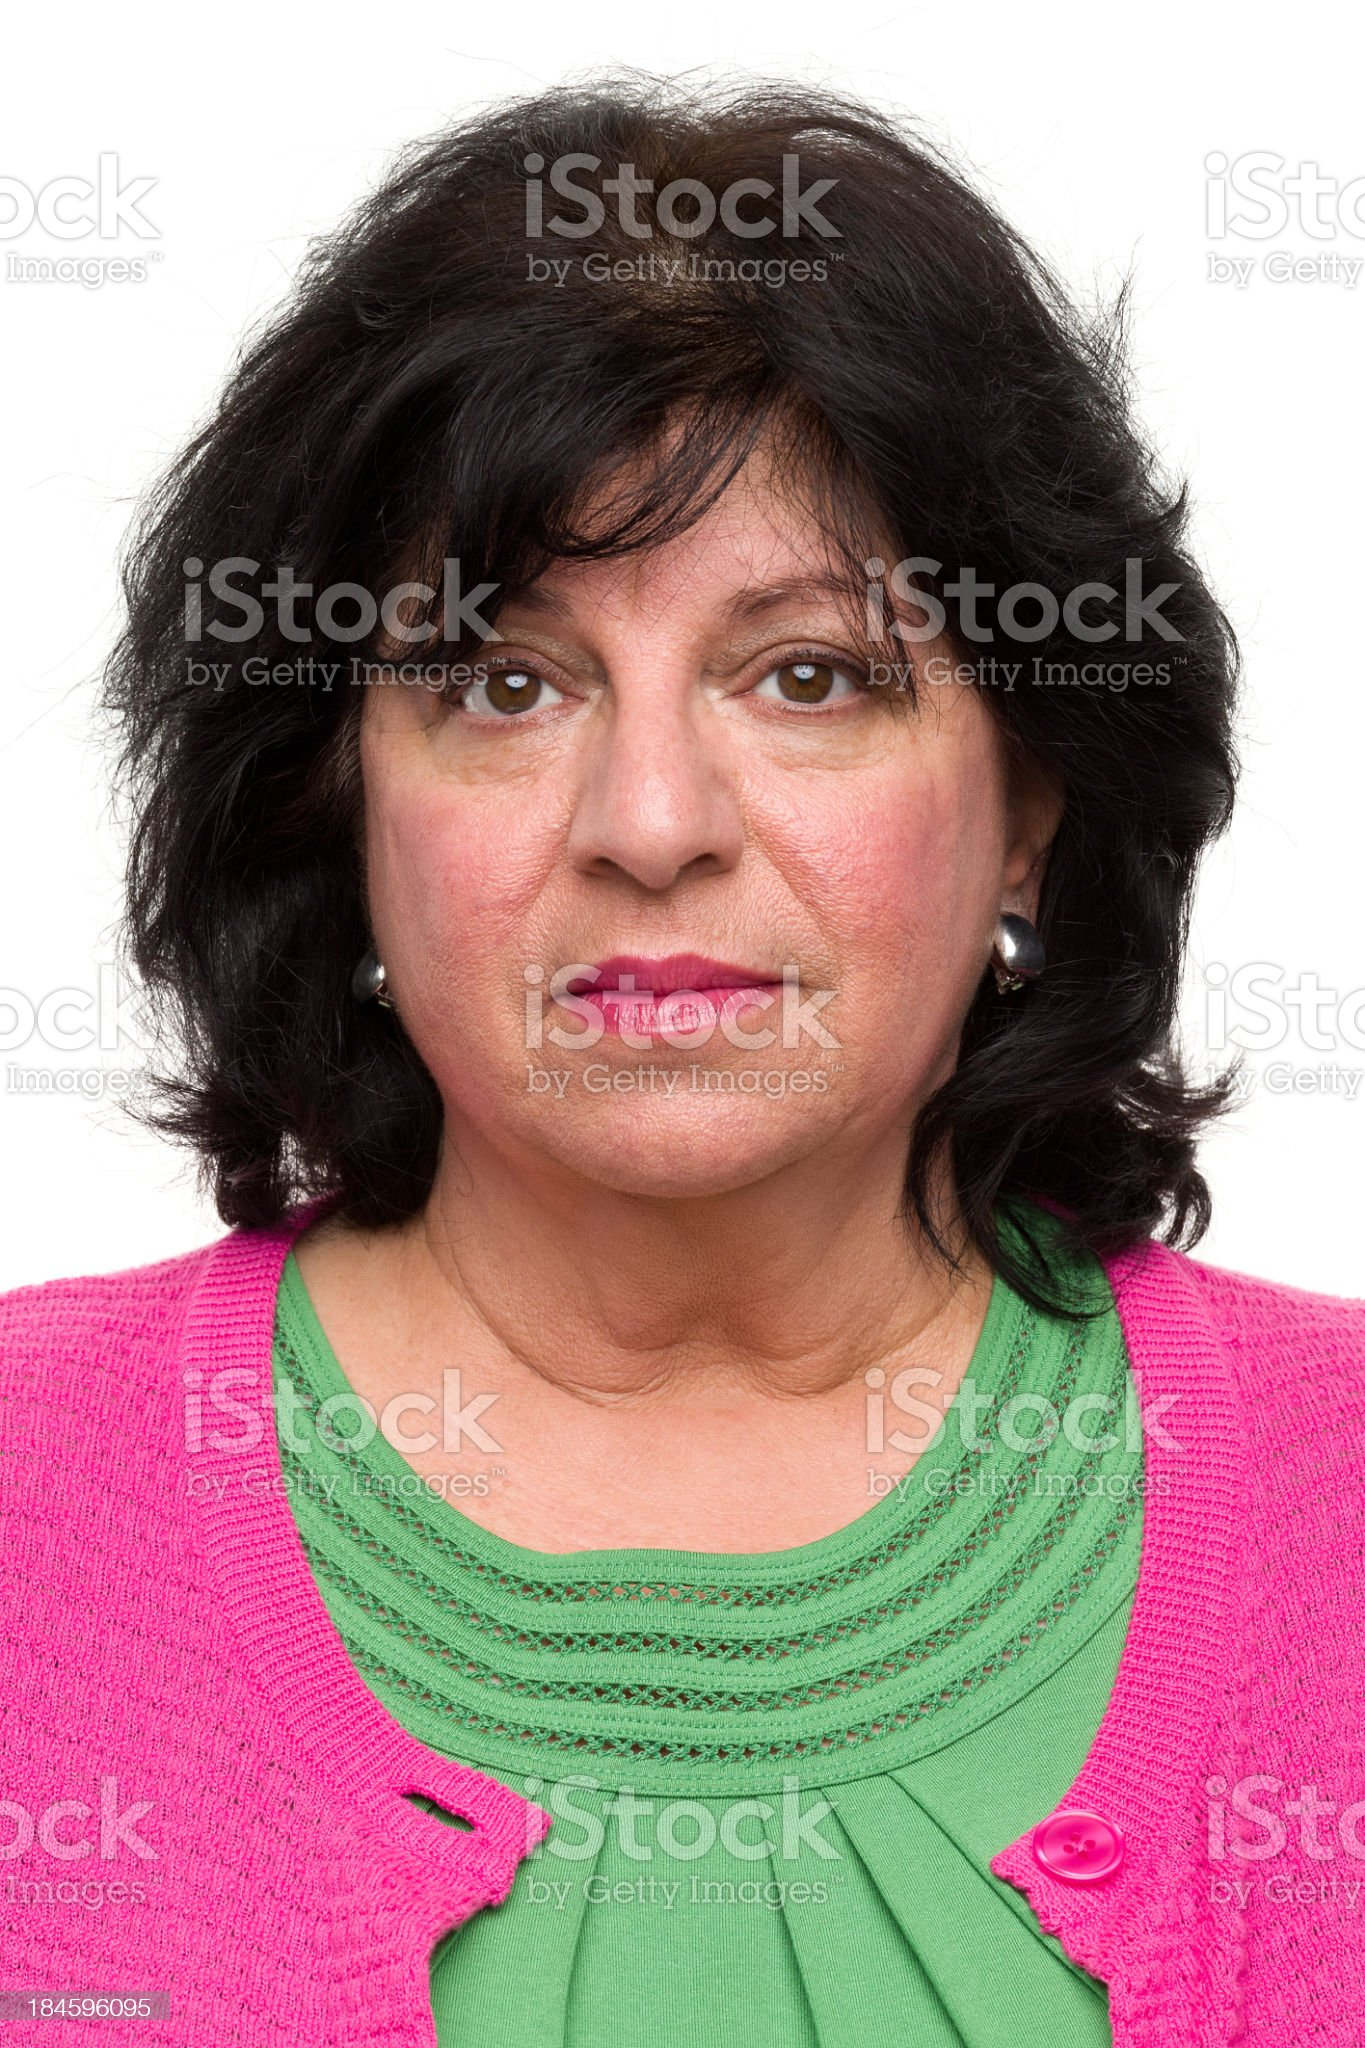 Mature Woman Mug Shot Portrait royalty-free stock photo